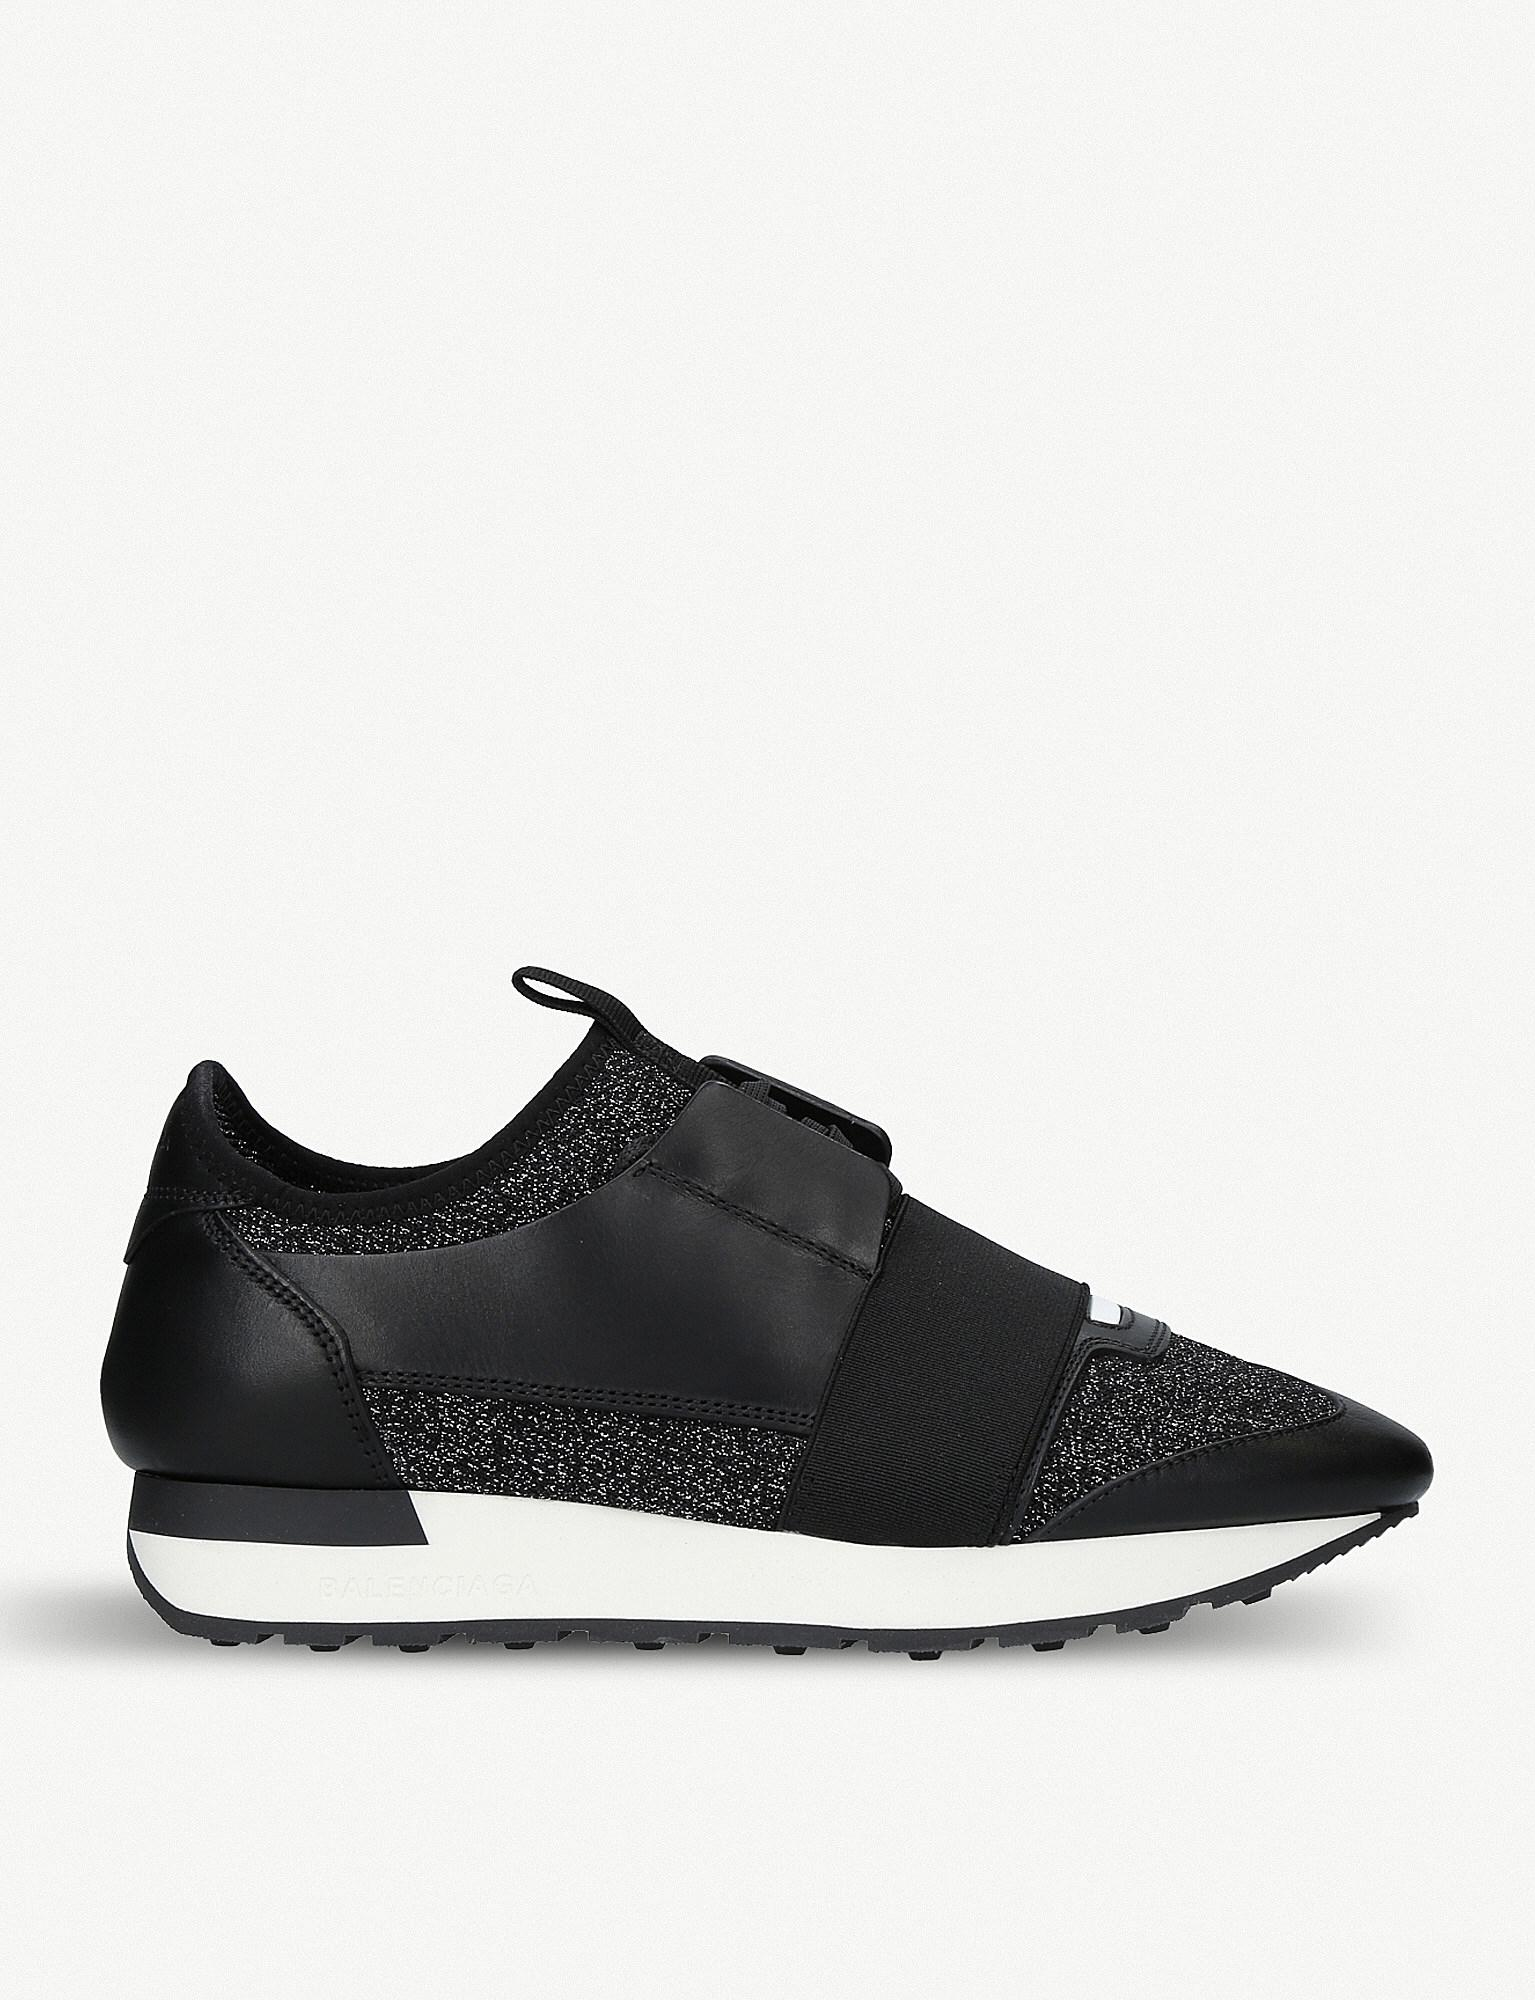 a024cf47069a Balenciaga Race Runners Low-top Trainers in Black - Lyst